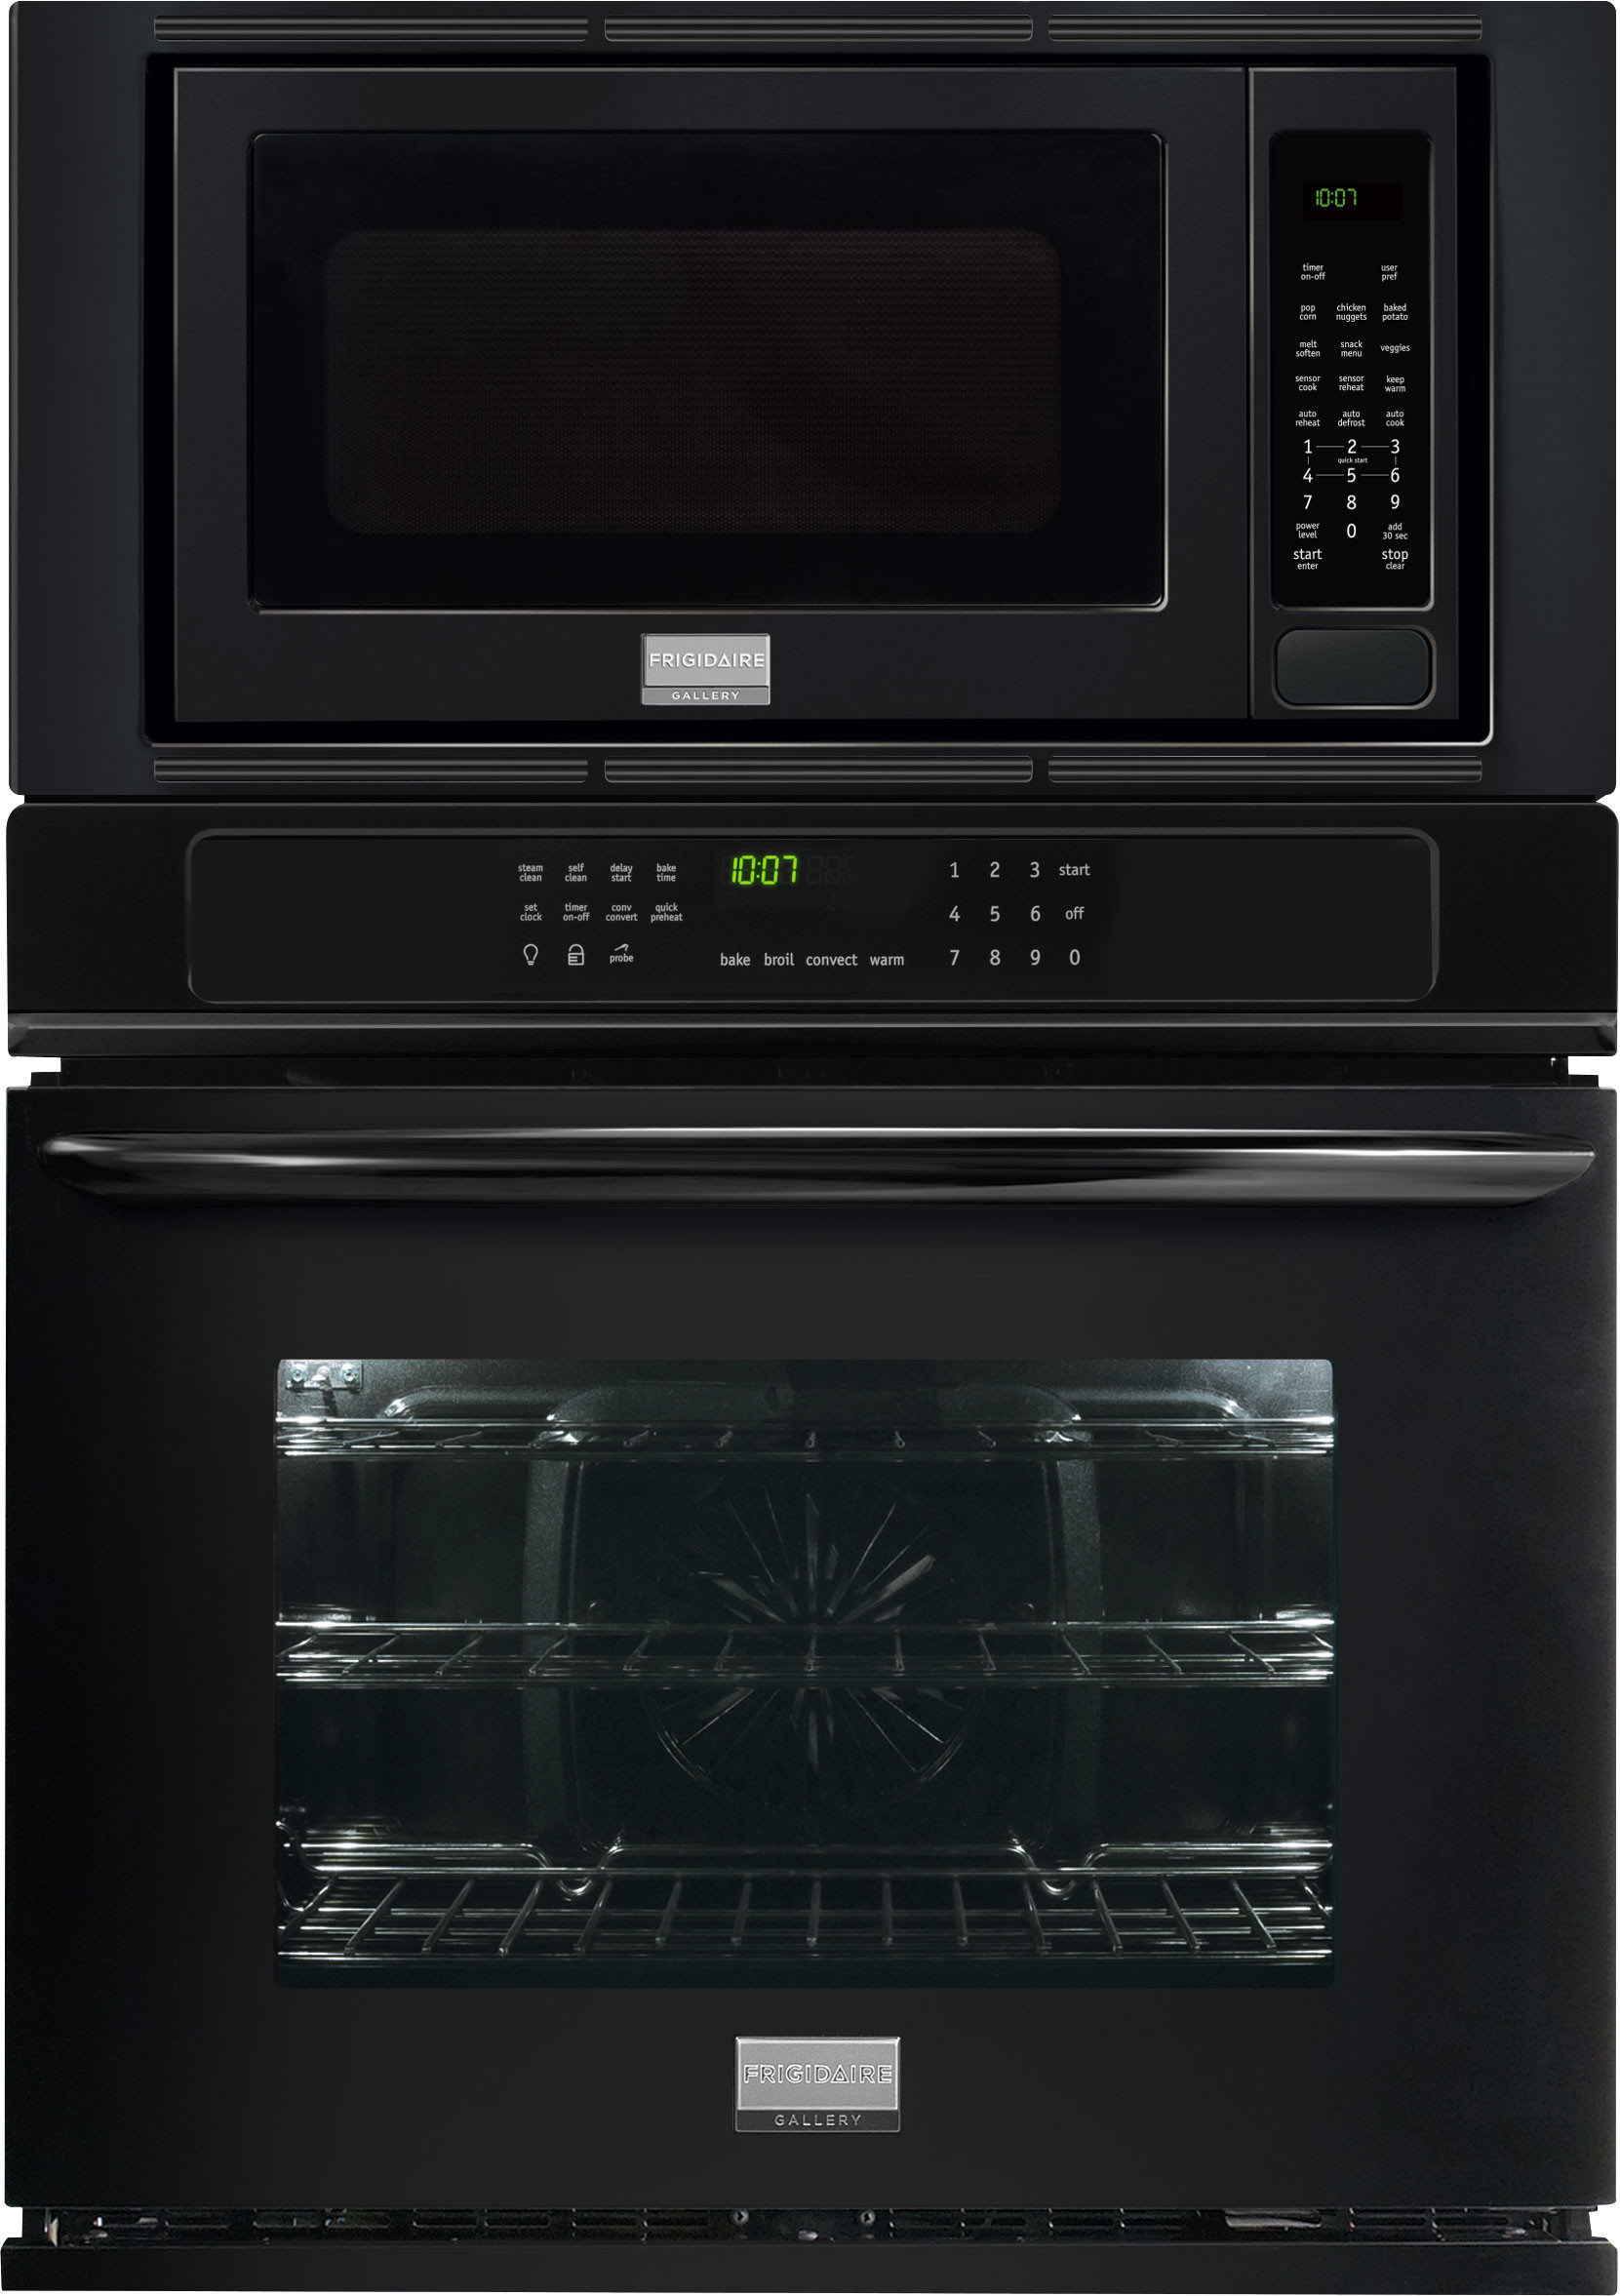 True Convection Oven, 2.0 cu. ft. Microwave, Steam Clean, Quick Preheat,  Keep Warm Setting, Temperature Probe and Star-K Certified Sabbath Mode:  Black